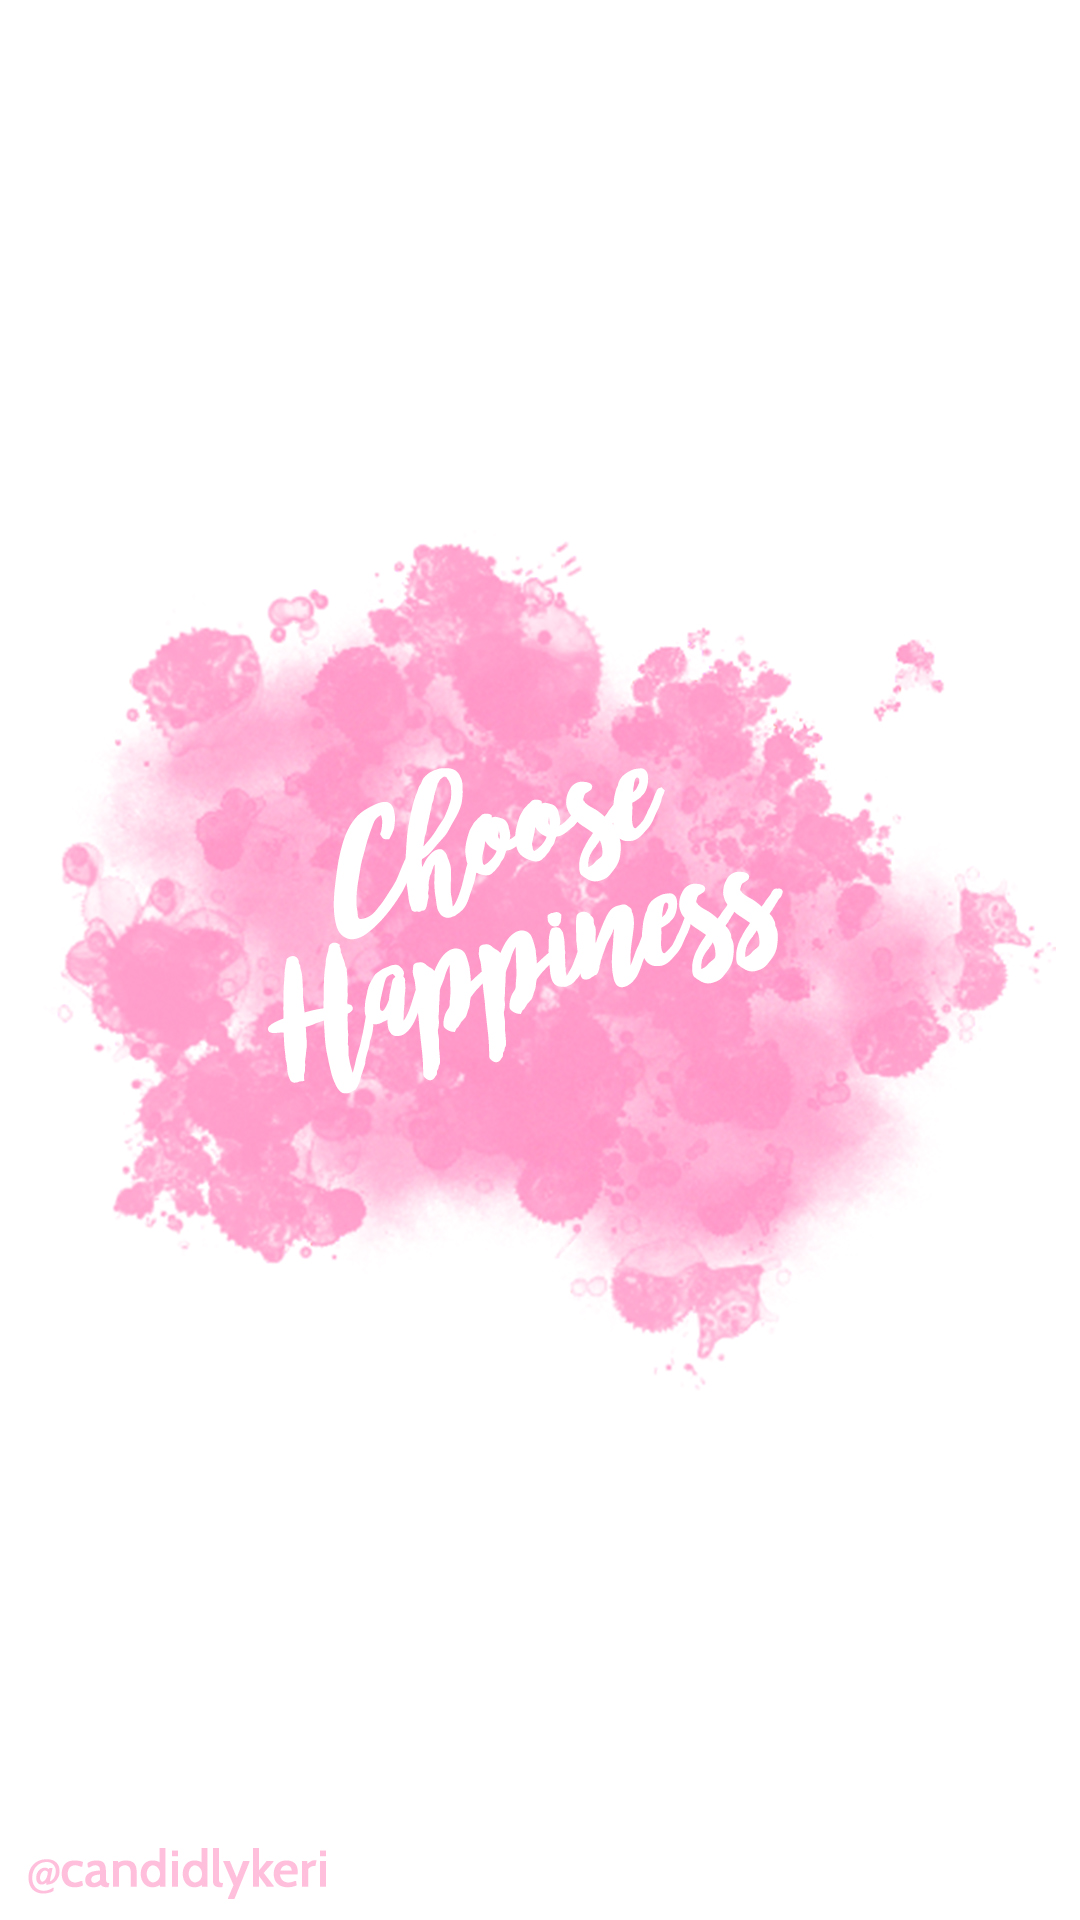 Choose-Happiness-quote-pink-splatter-paint-watercolor-with-black-and-white-flowers-free-do-wallpaper-wp3403889